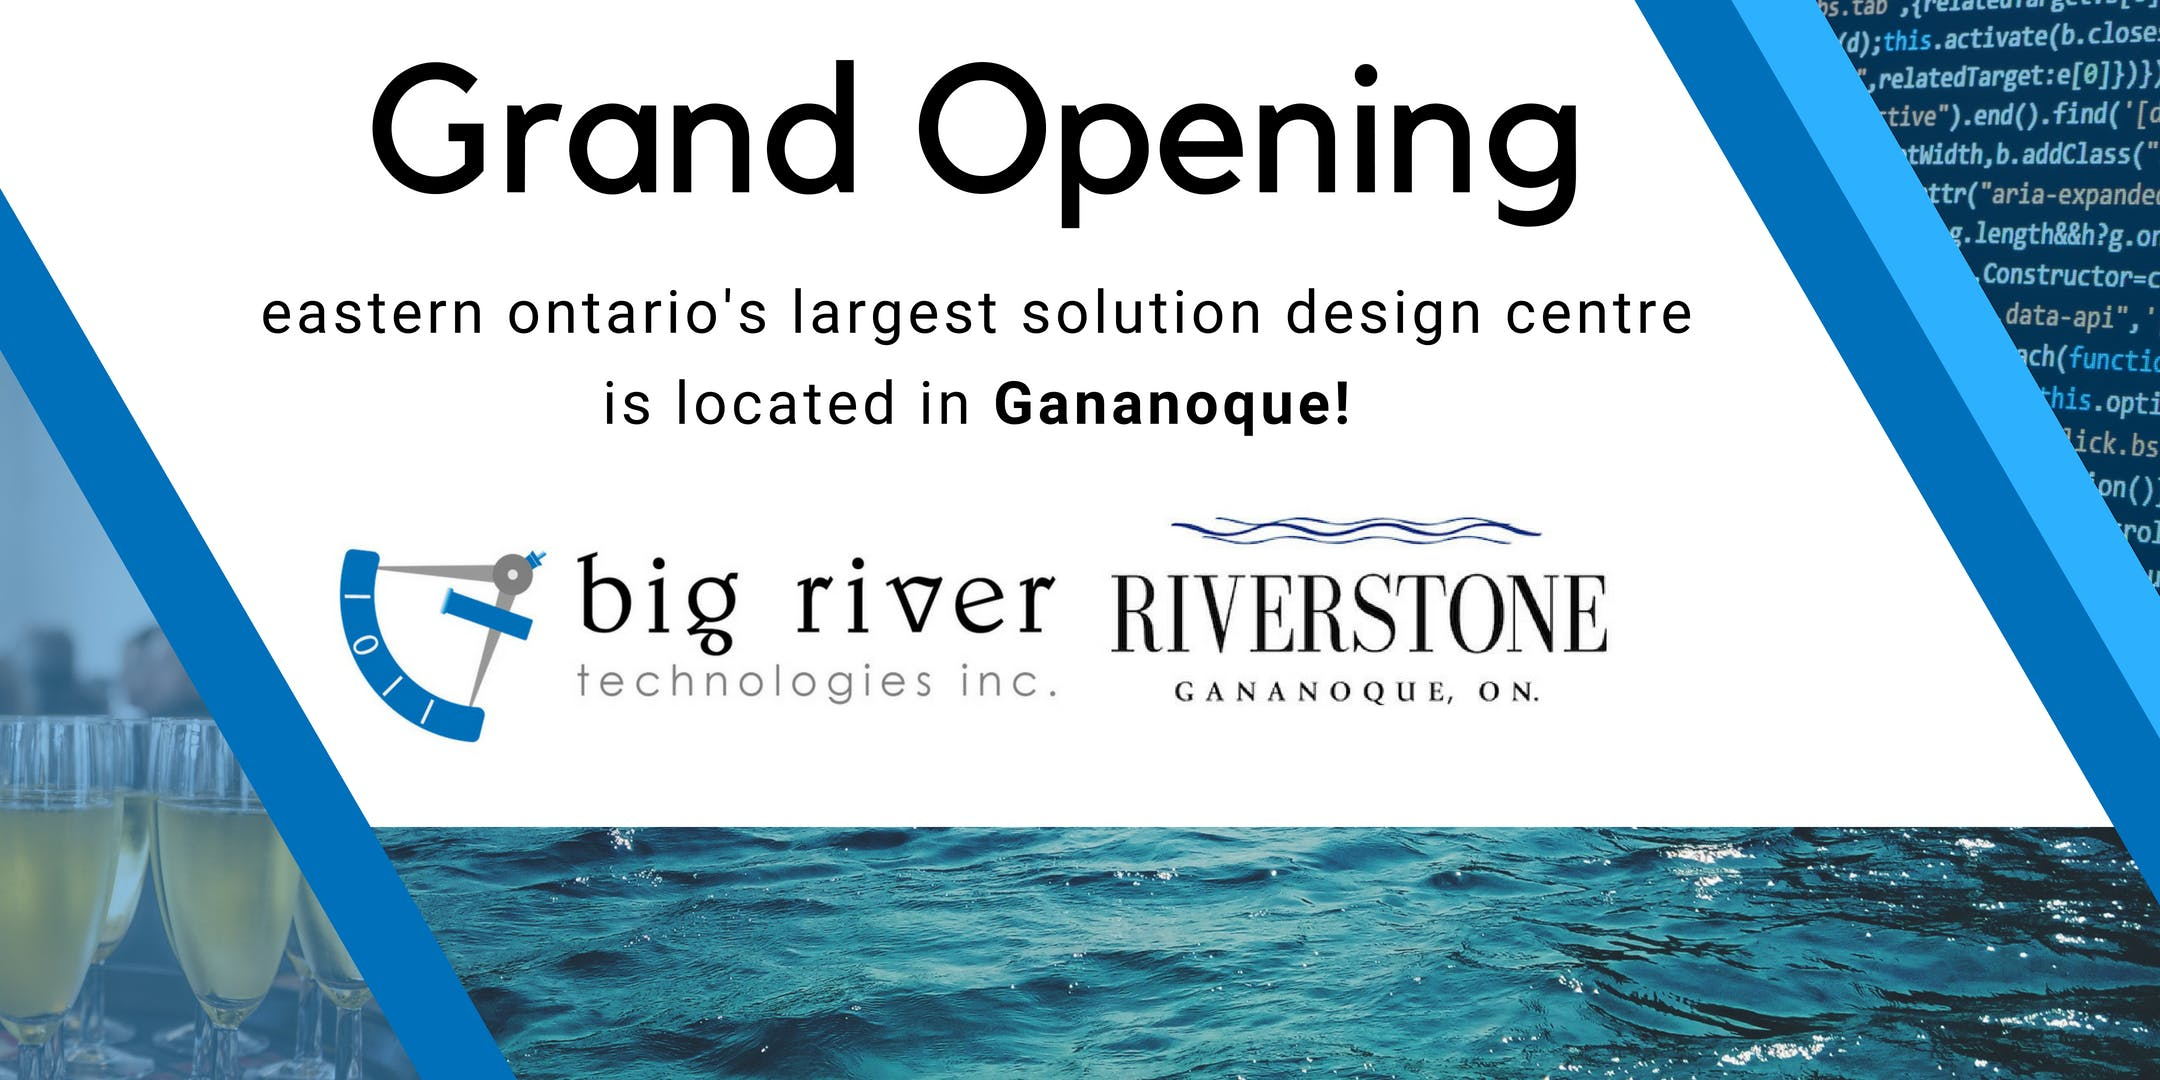 Grand Opening of Eastern Ontario's Largest So